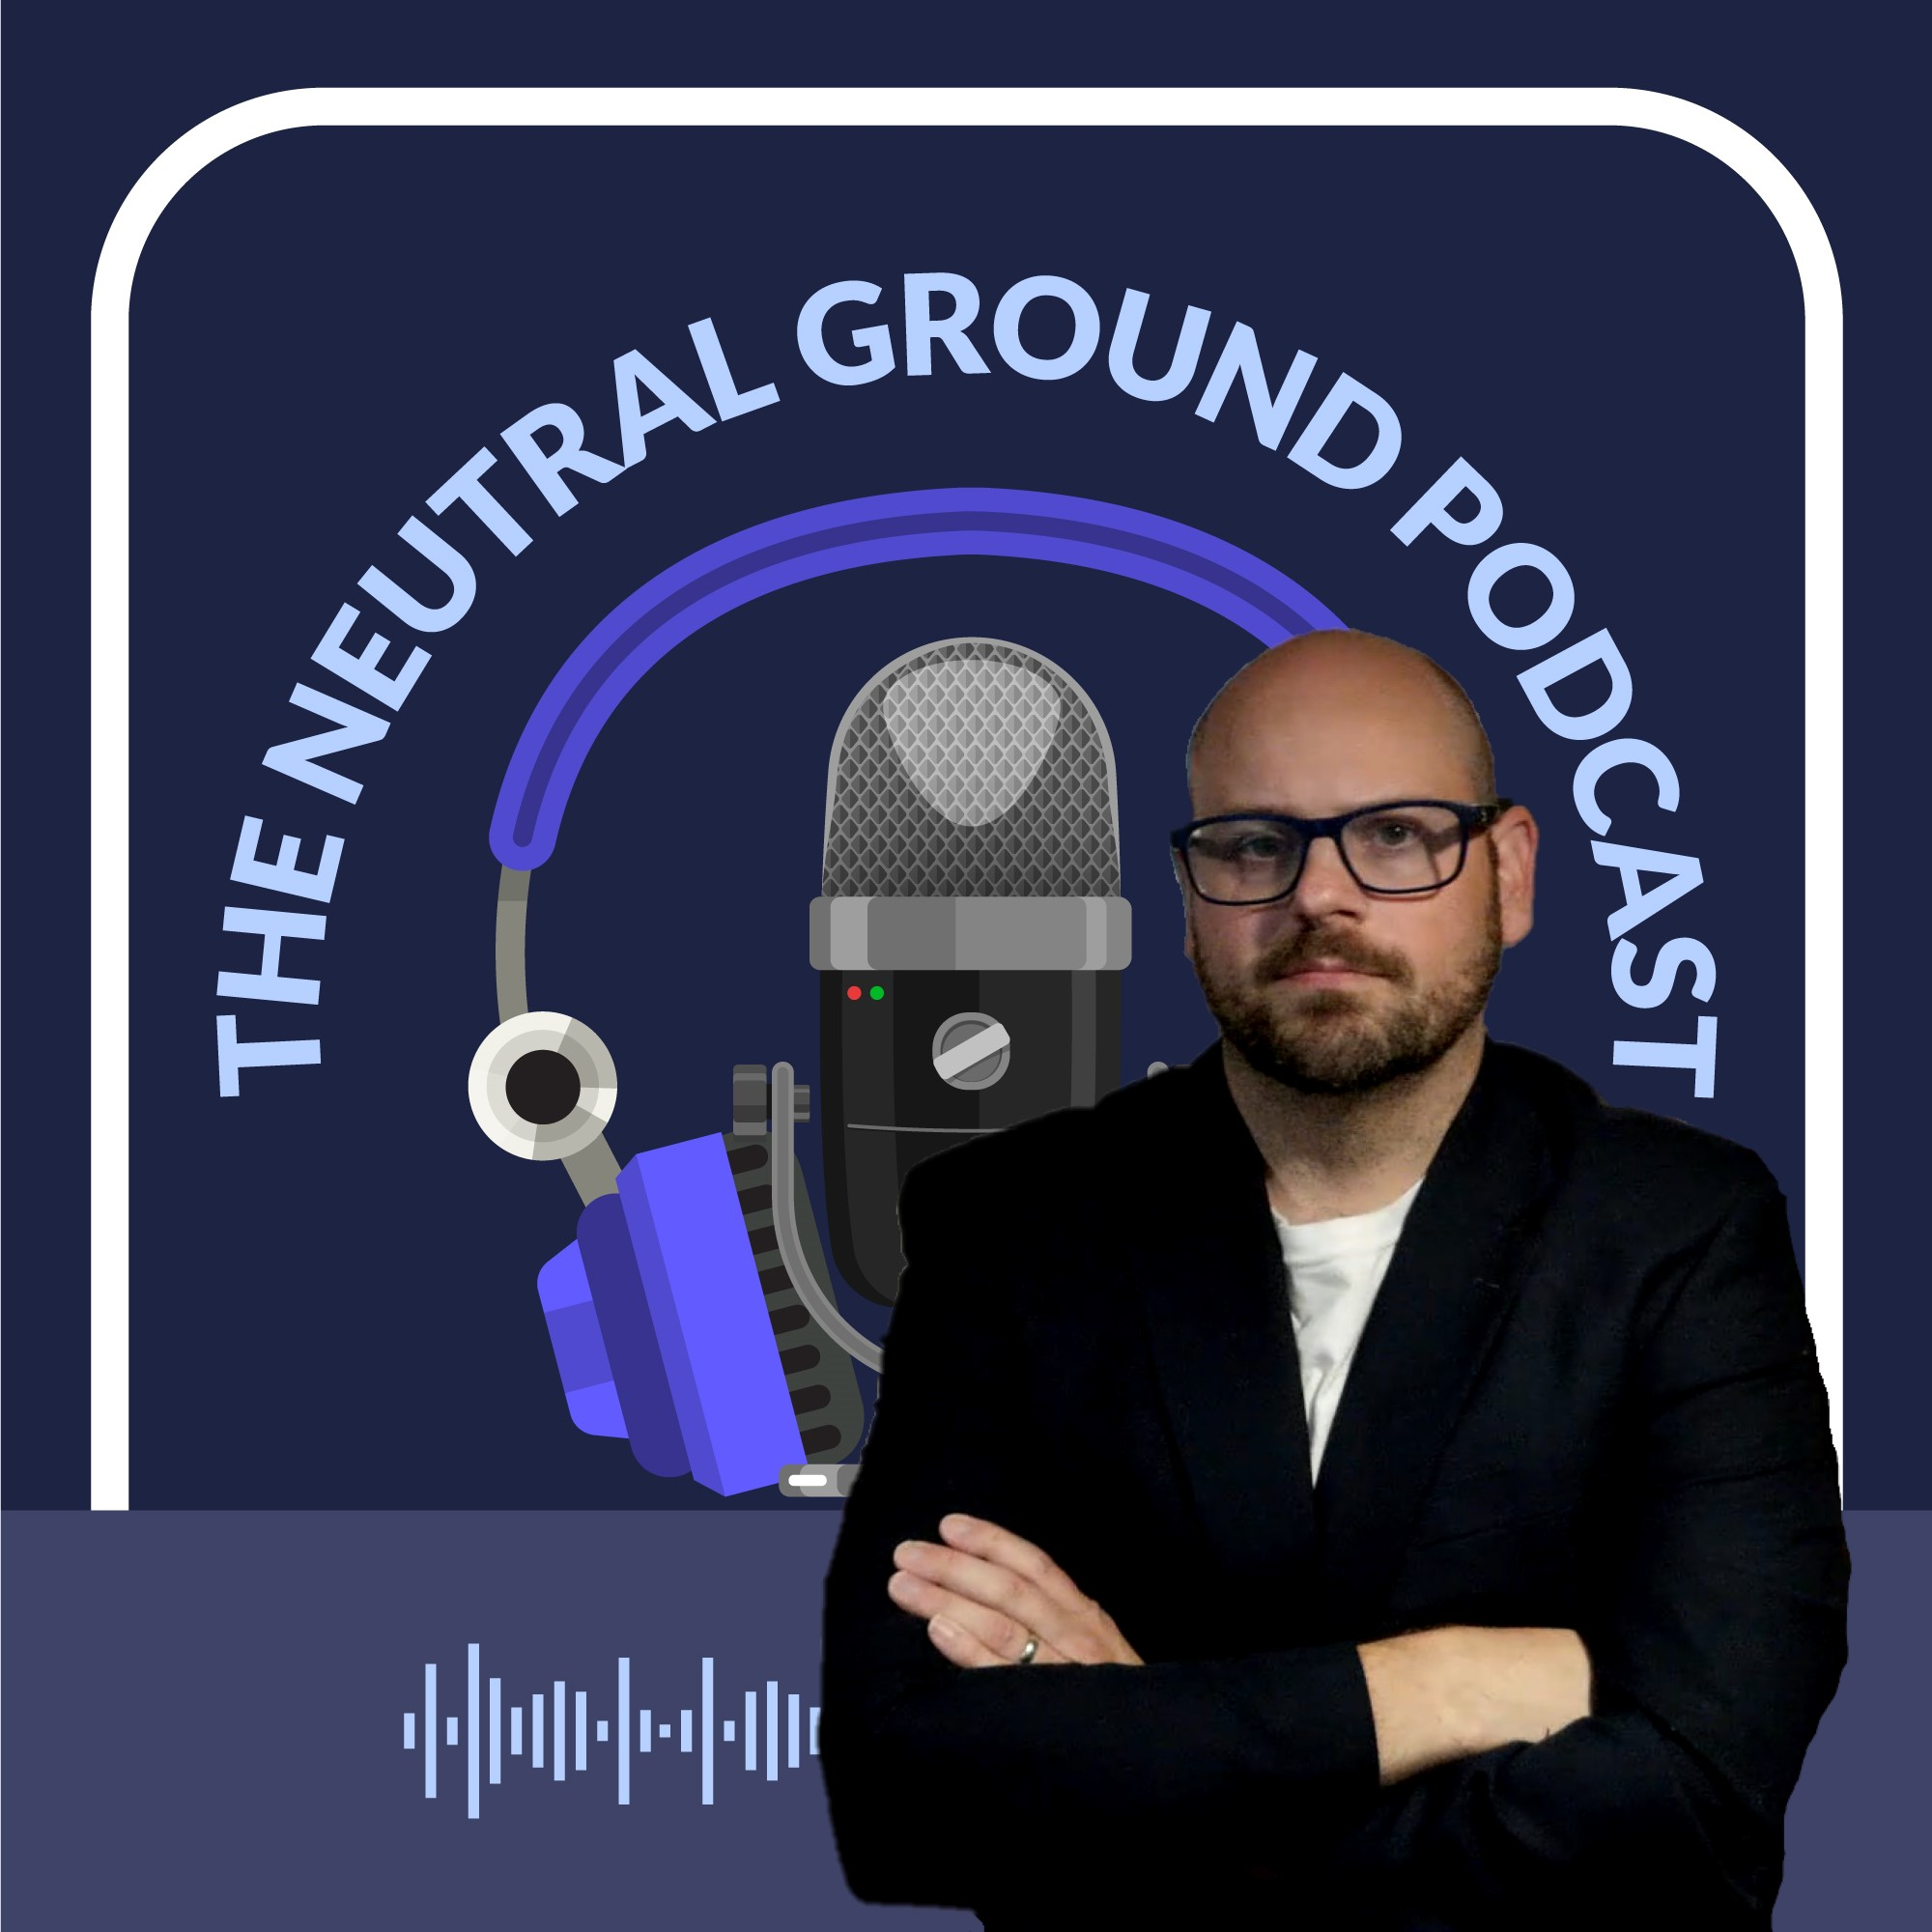 The Neutral Ground Podcast